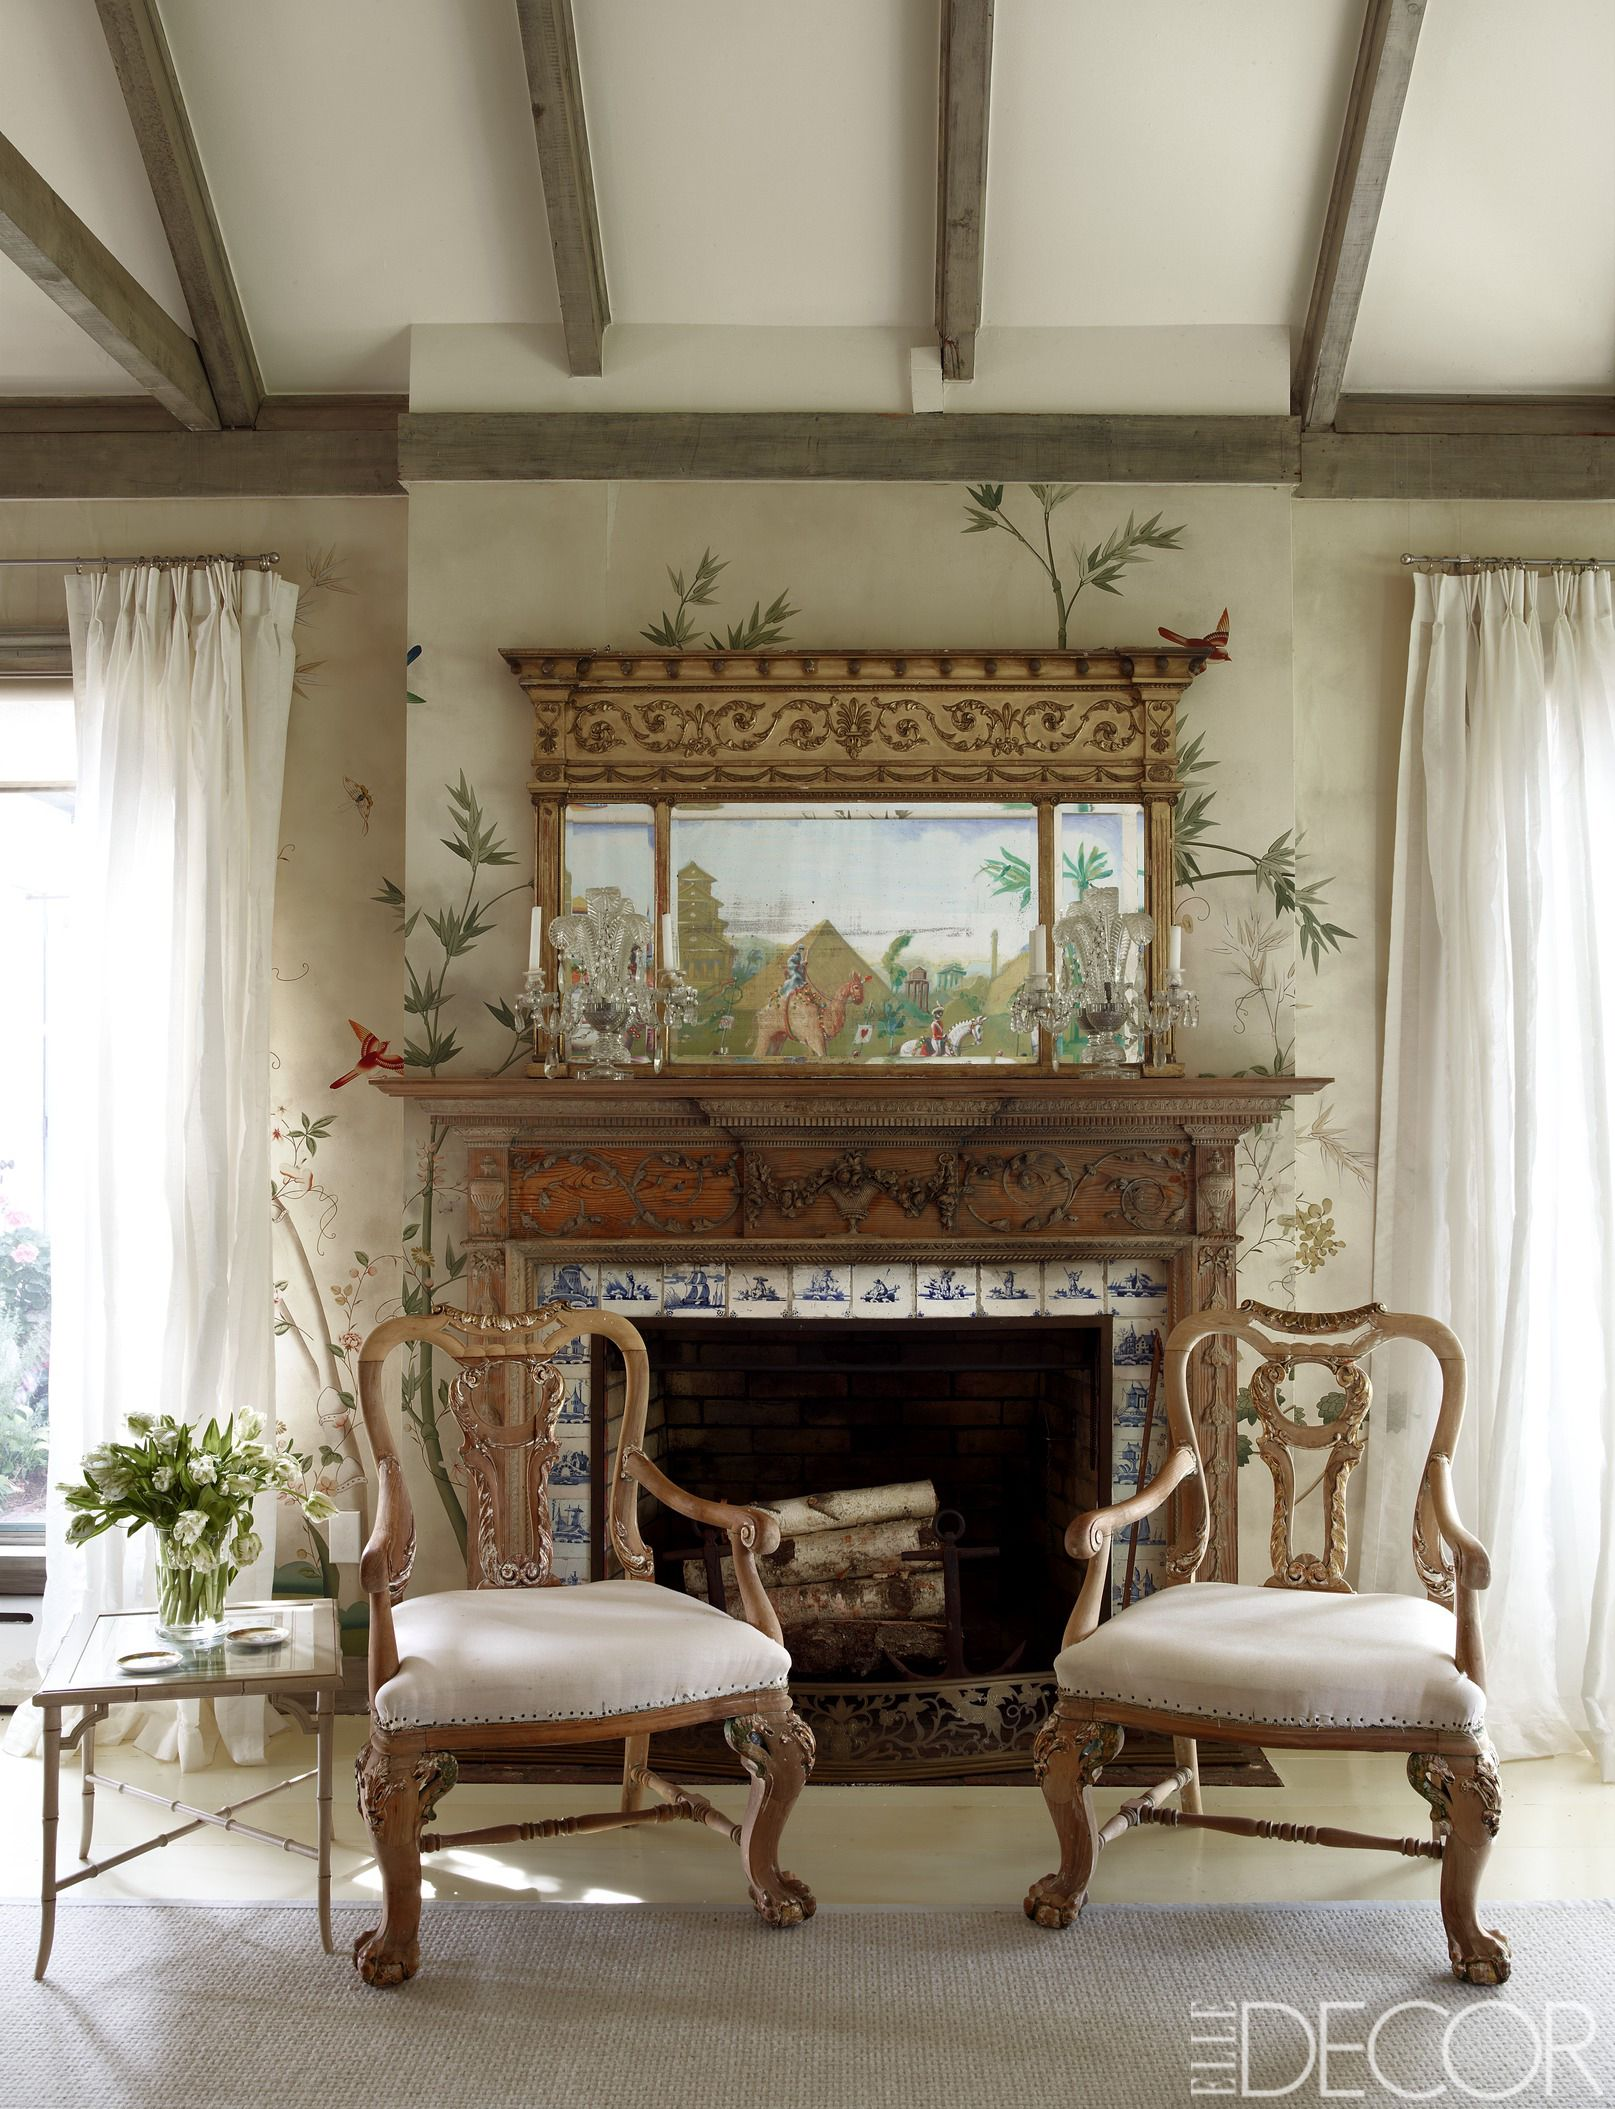 The living room fireplace with a surround